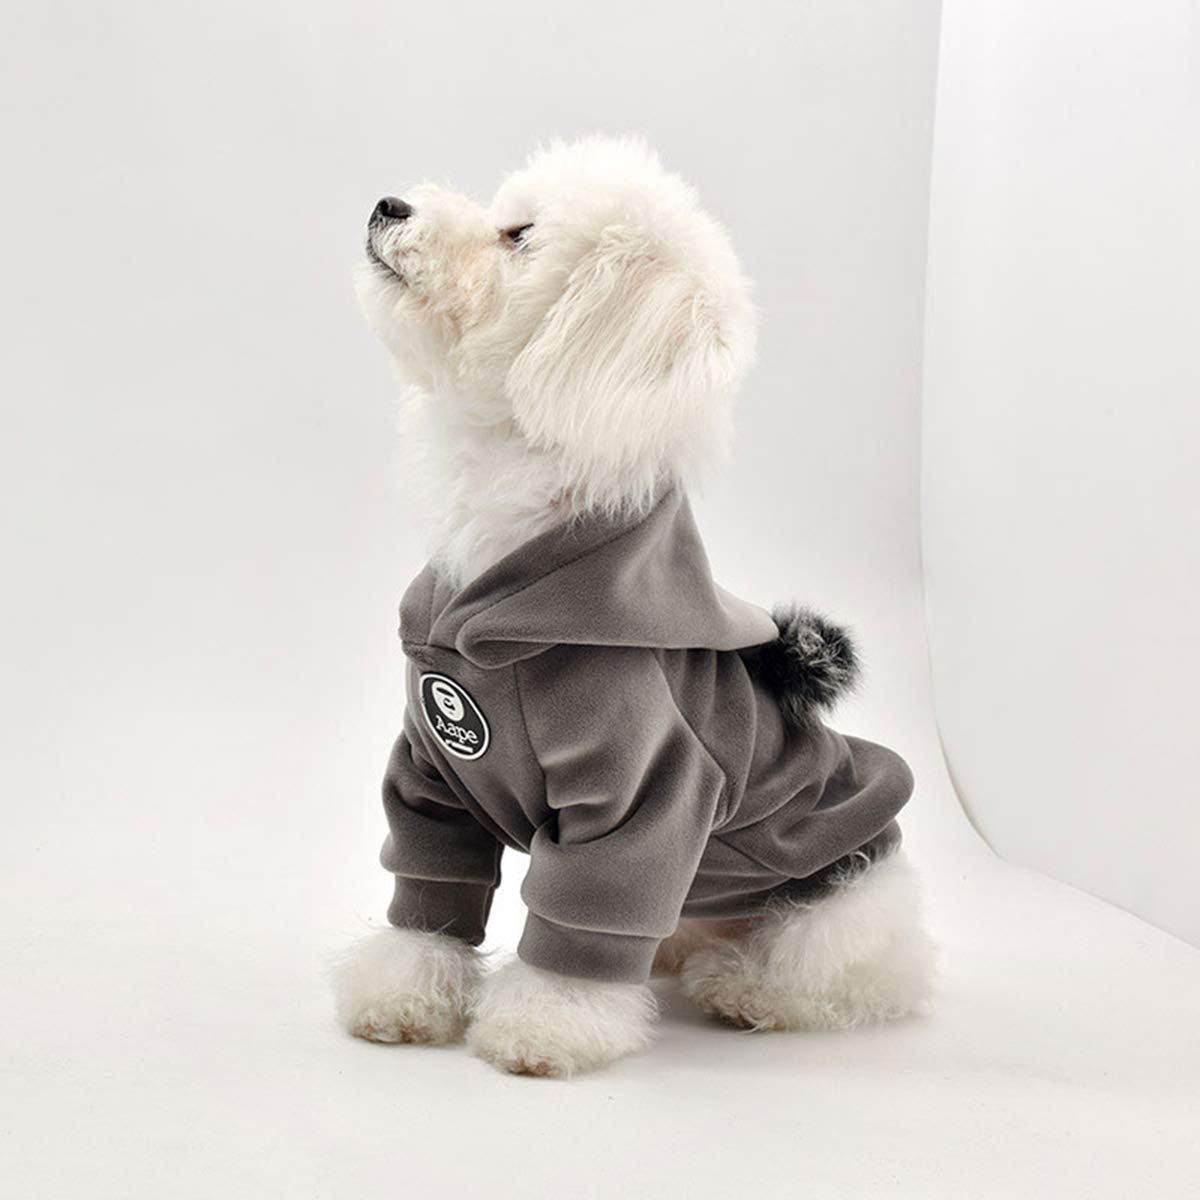 Brown L Brown L PETFDH Pet Dog Hoodies Clothes Cotton Autumn and Winter Sports Sweater Clothing Coat for Small Dog Teddy Law Fighting Brown L